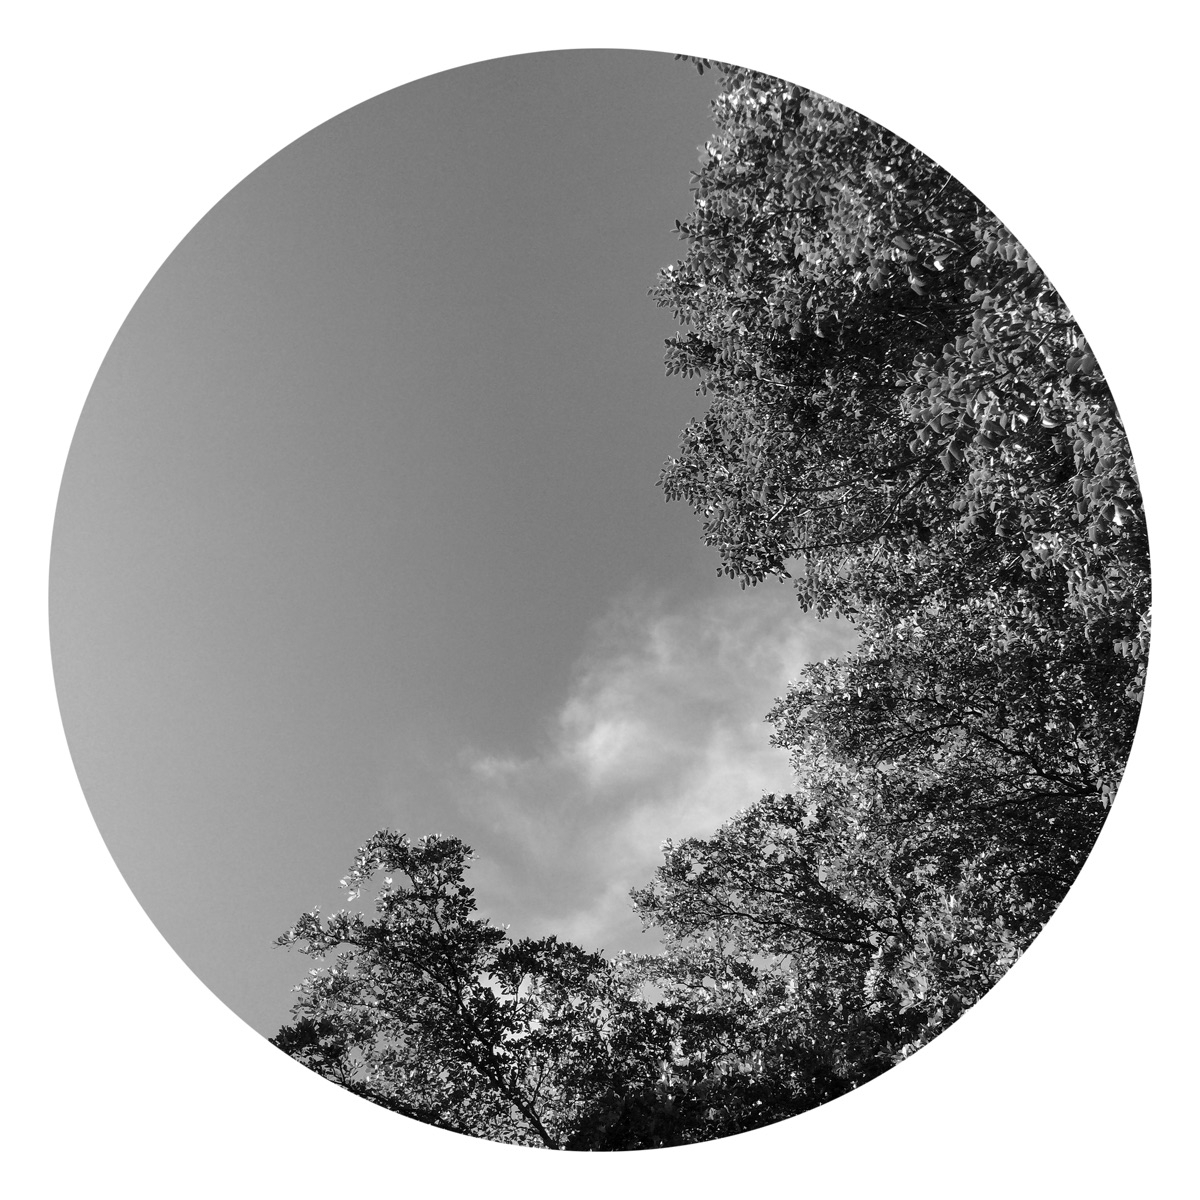 Cloud Moving Tree Apps - mikefl99 - mikefl99 | ello